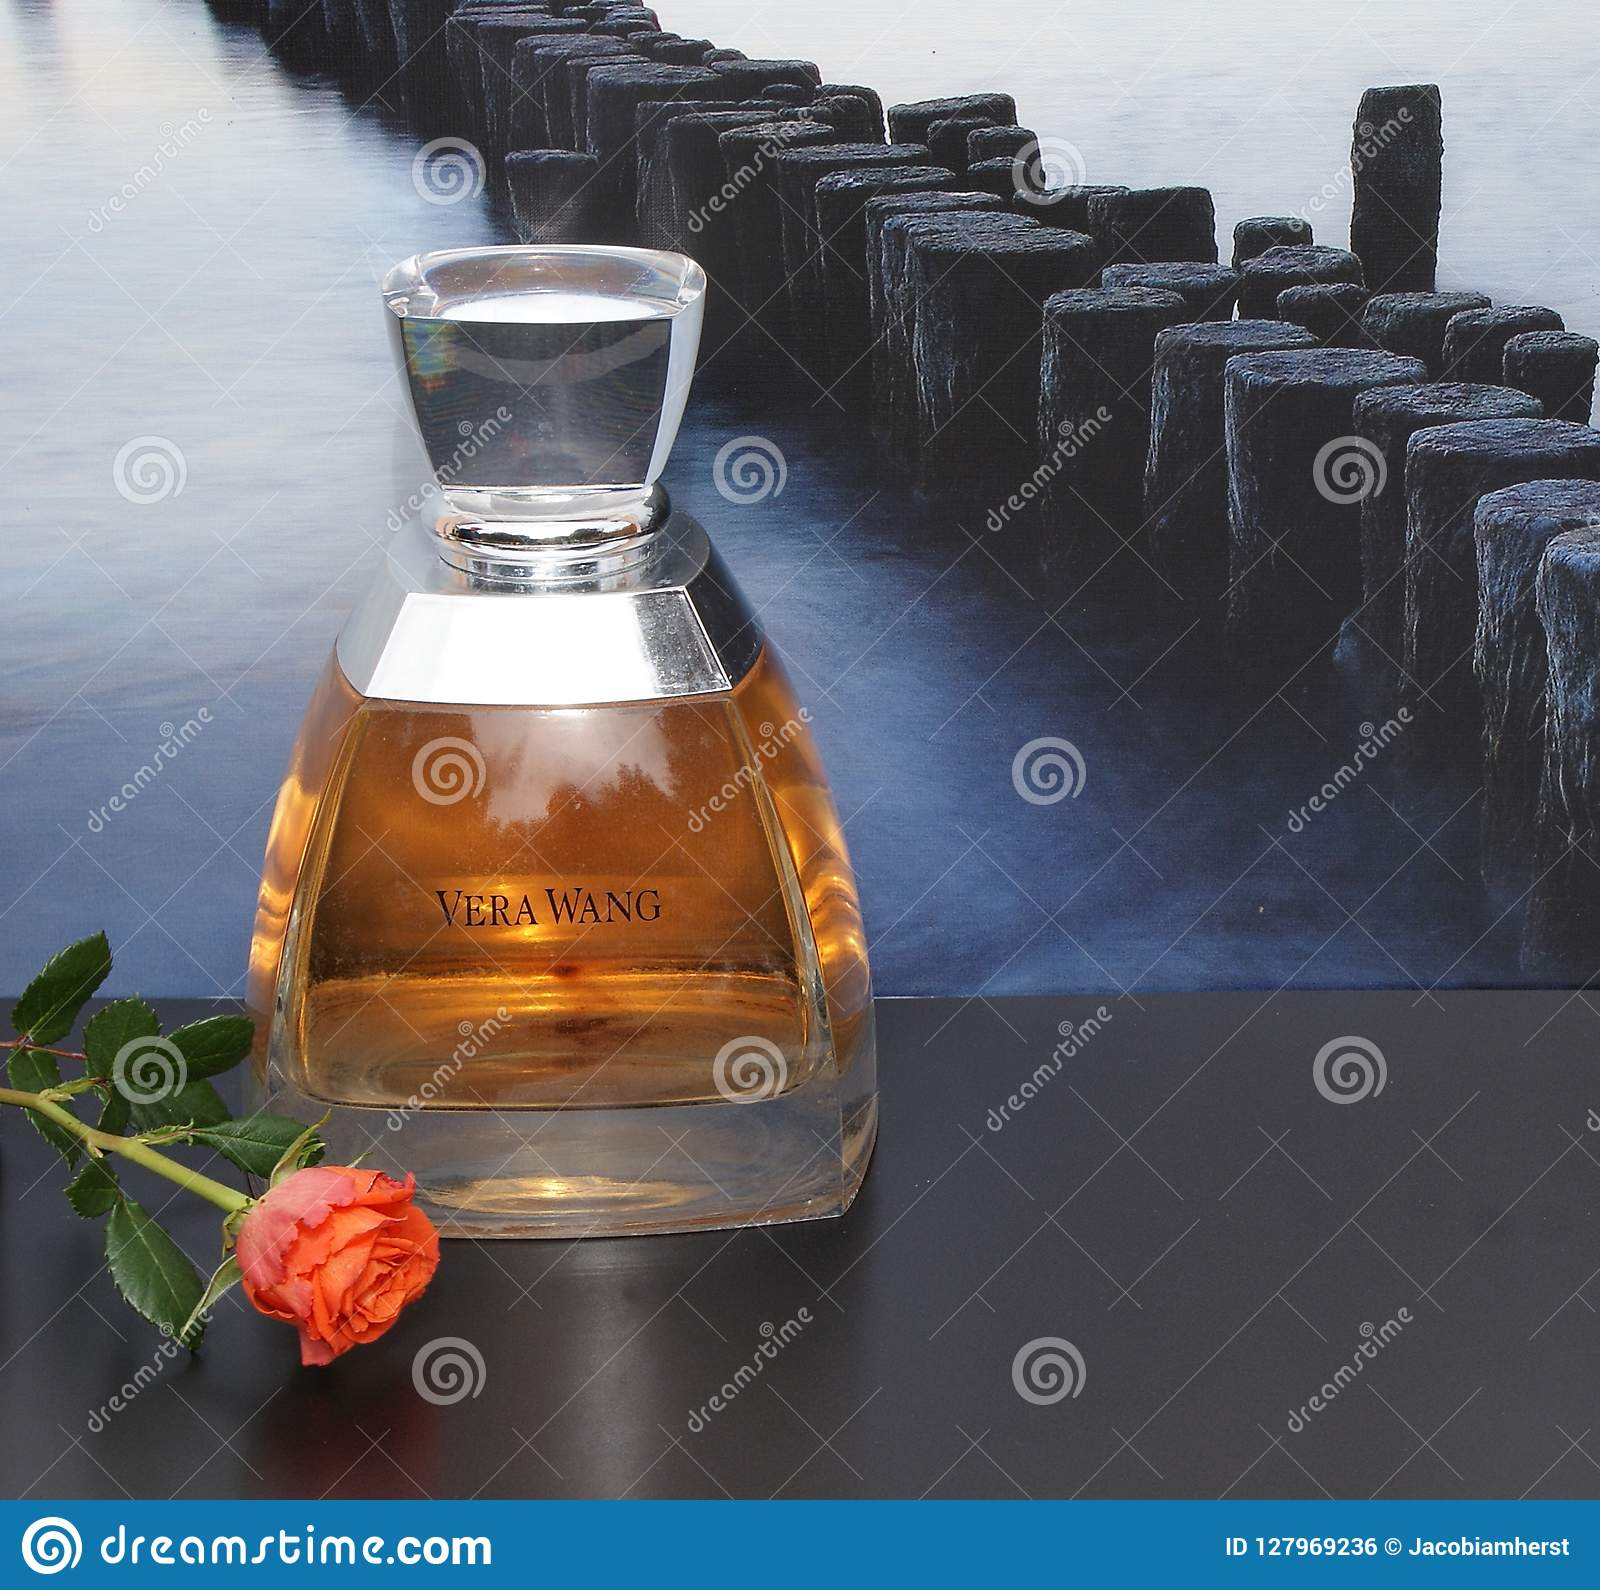 Vera Wang Fragrance For Ladies Large Perfume Bottle In Front Of The Picture Of A Groyne In The Sea Decorated With A Rose Editorial Photo Image Of Cosmetics Flacon 127969236